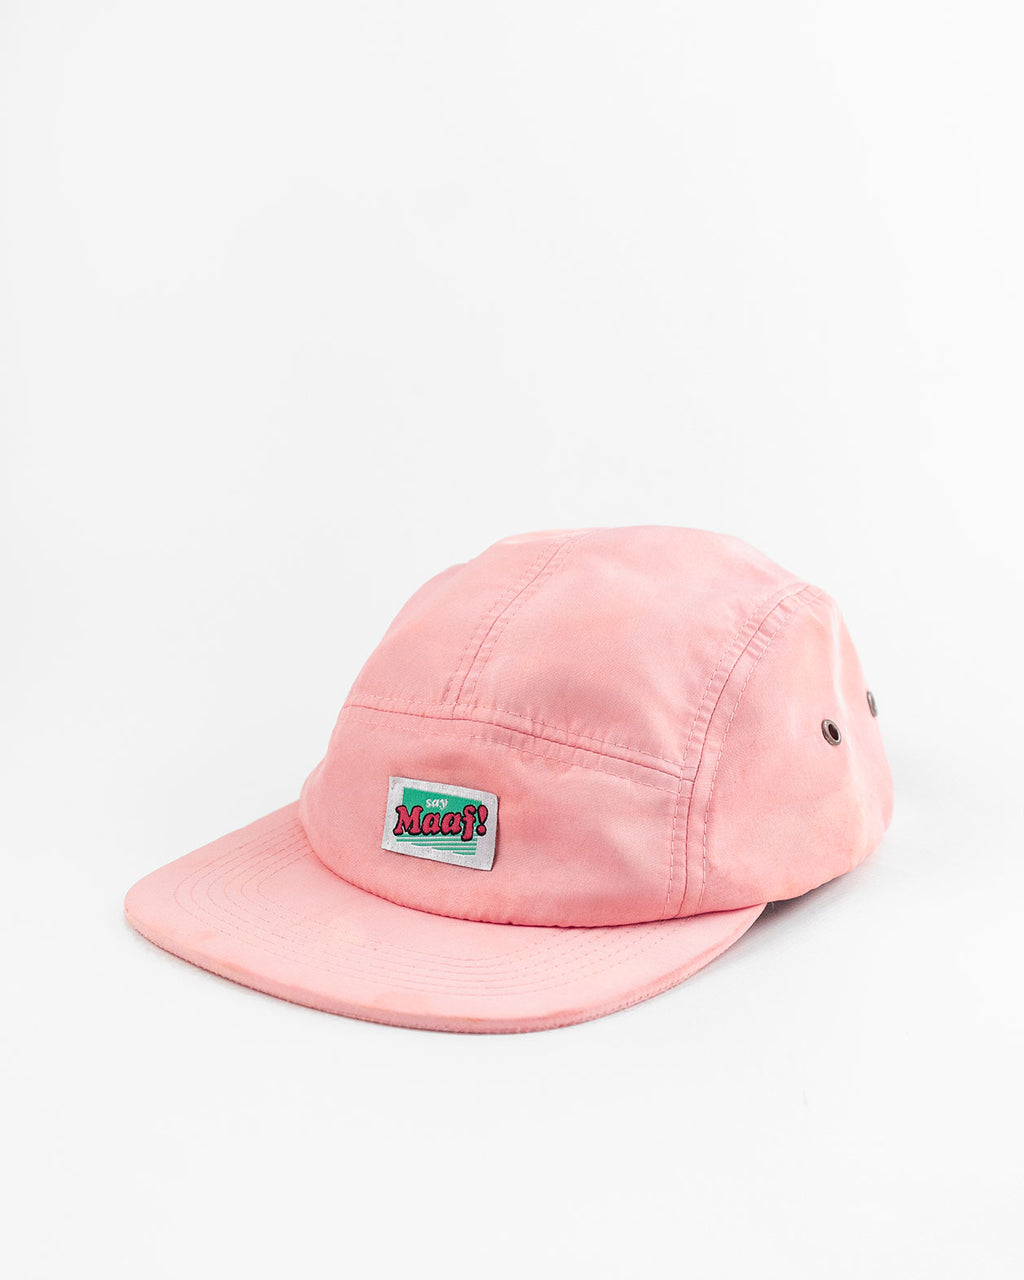 5 PANEL CORAL